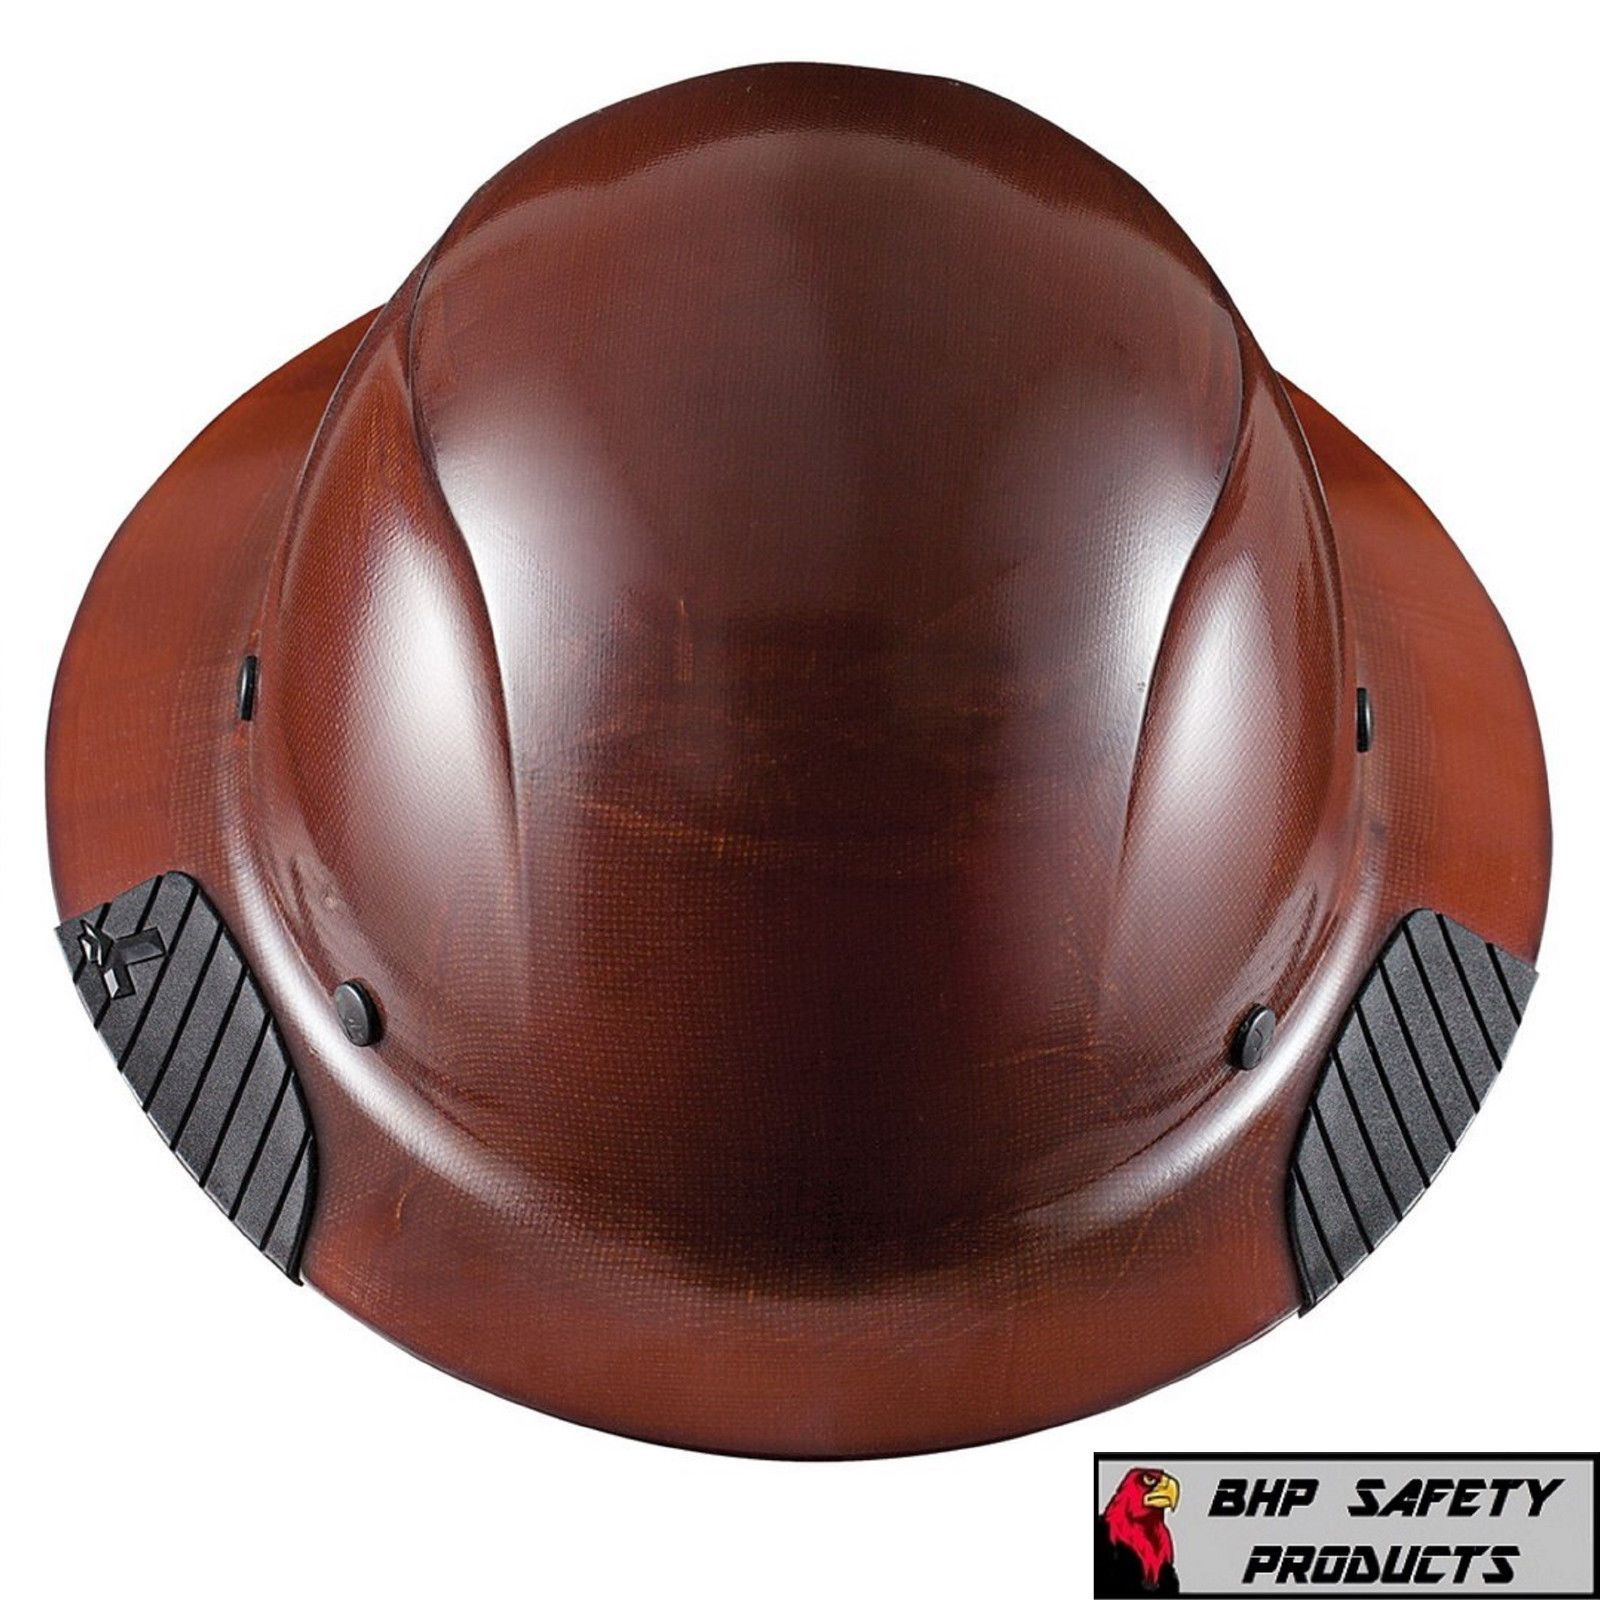 LIFT SAFETY HDF15NG DAX FIBER REINFORCED HARD HAT FULL